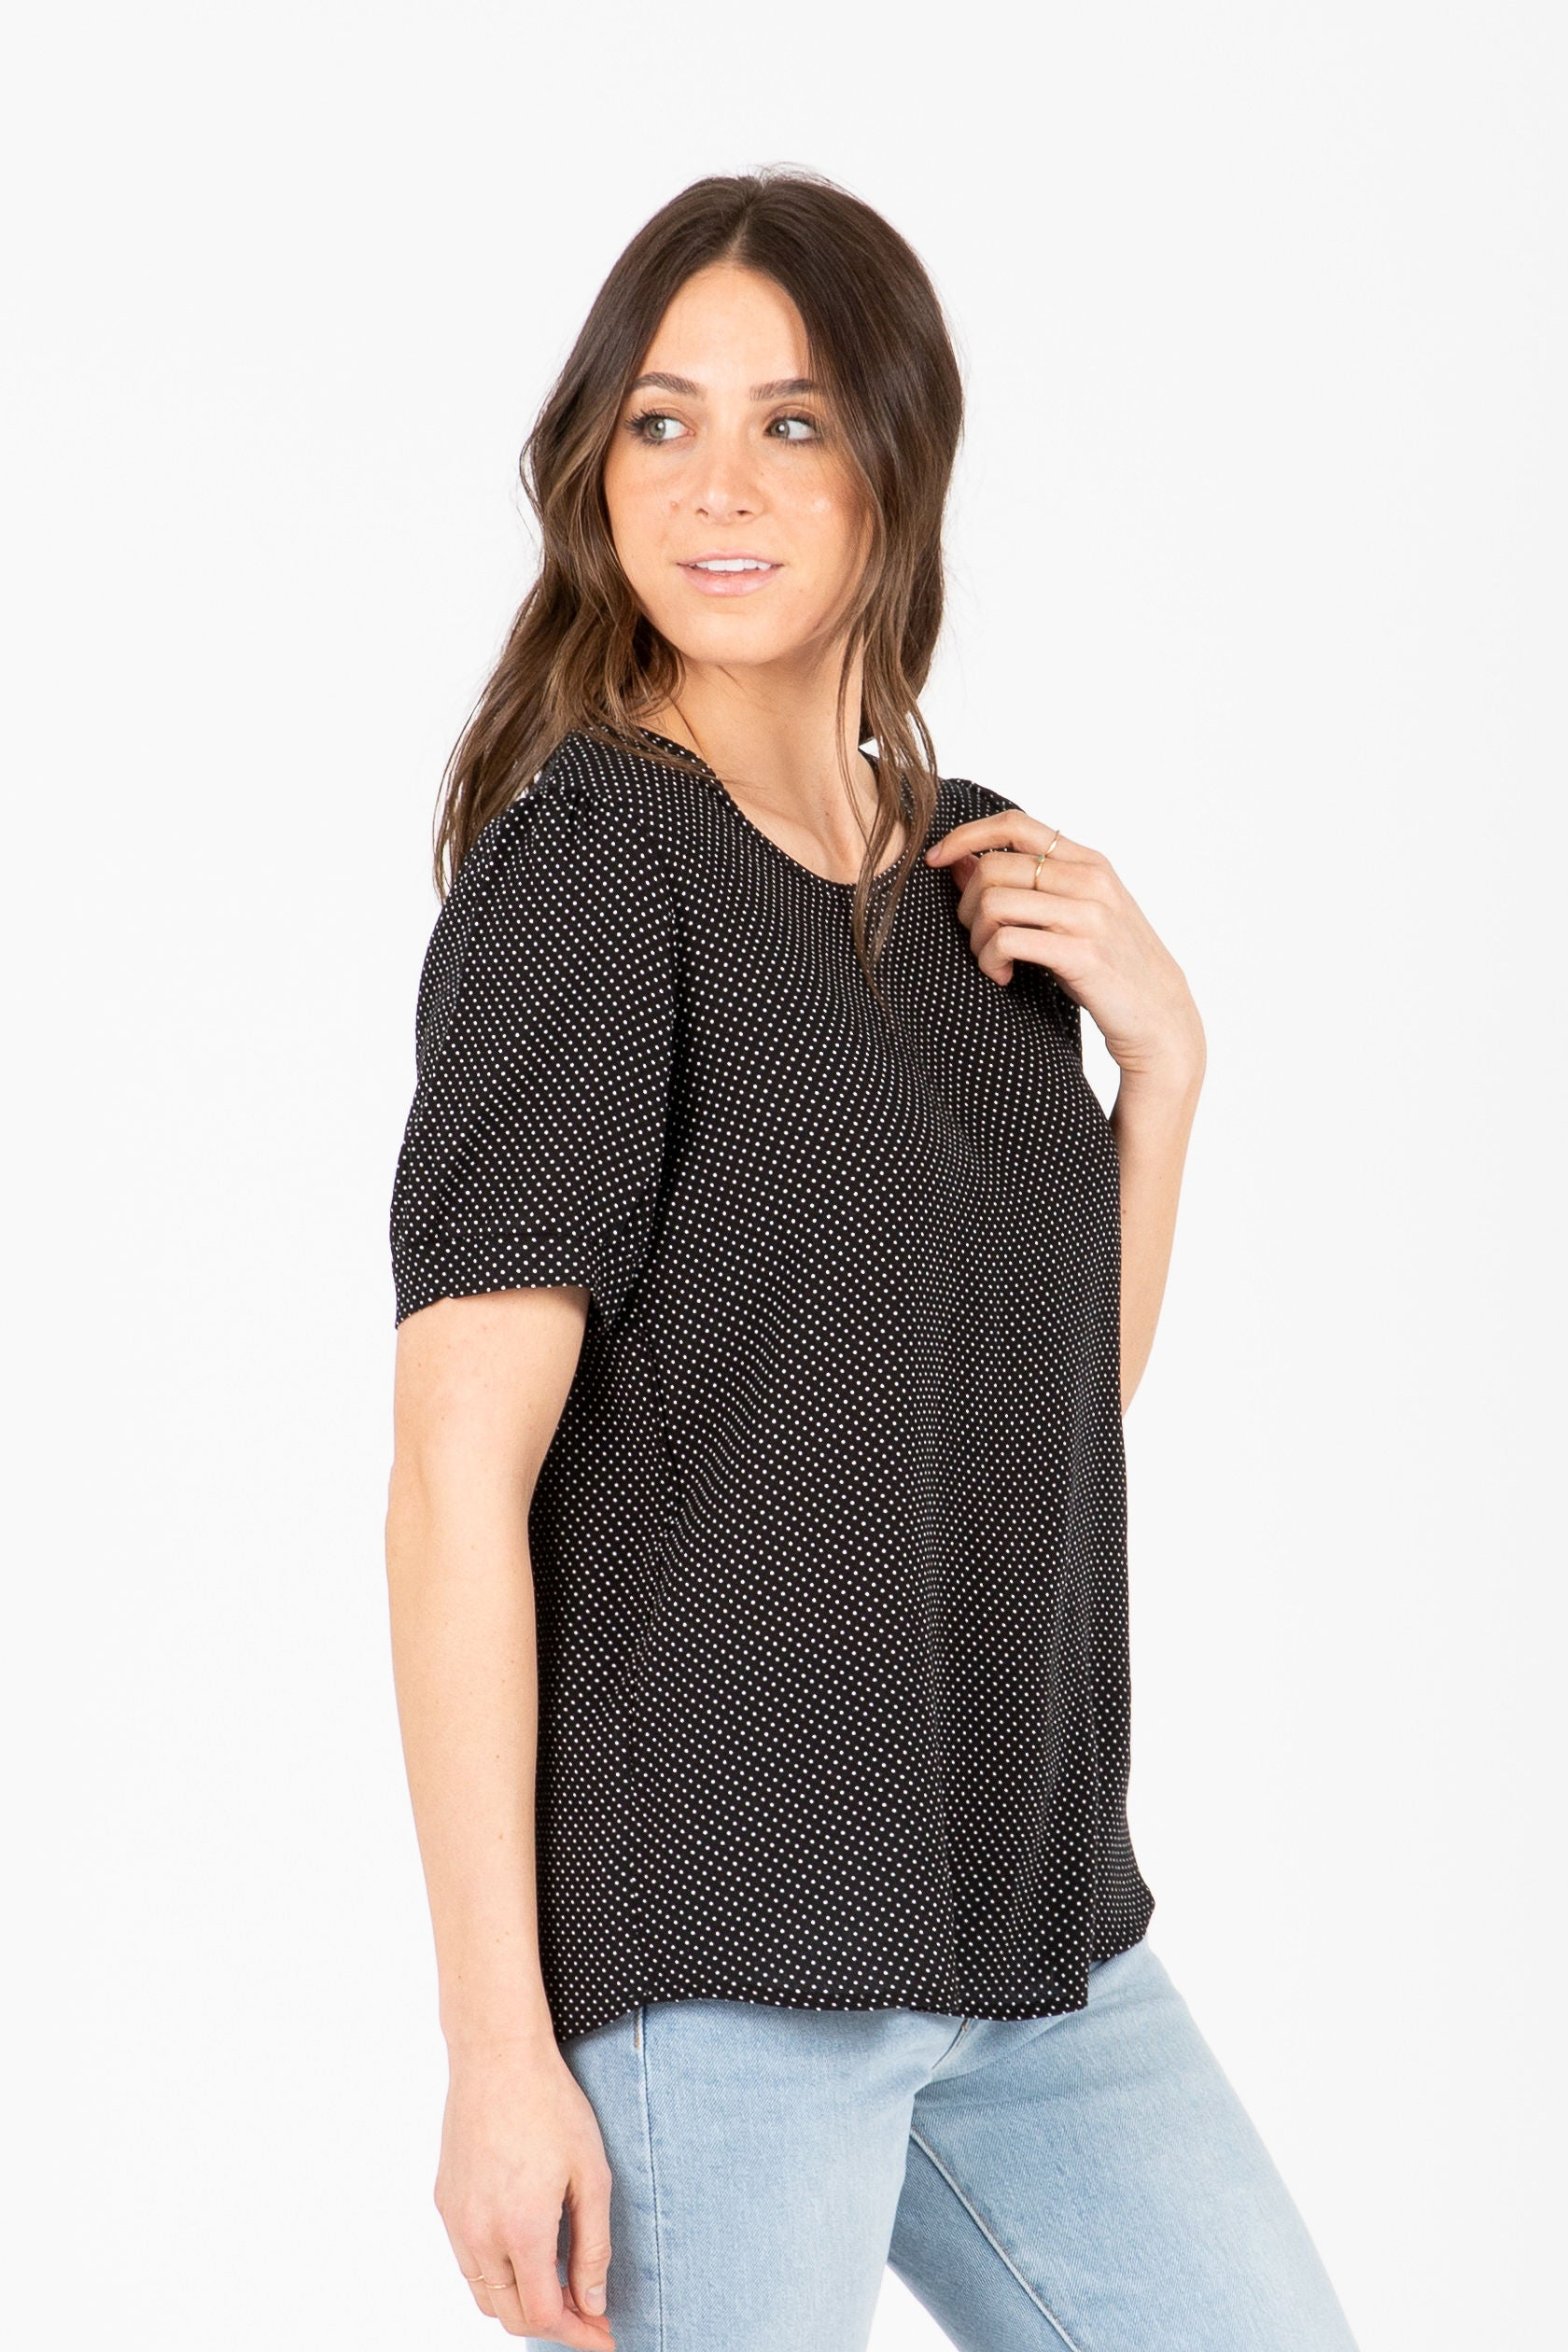 The Arena Dot Blouse in Black